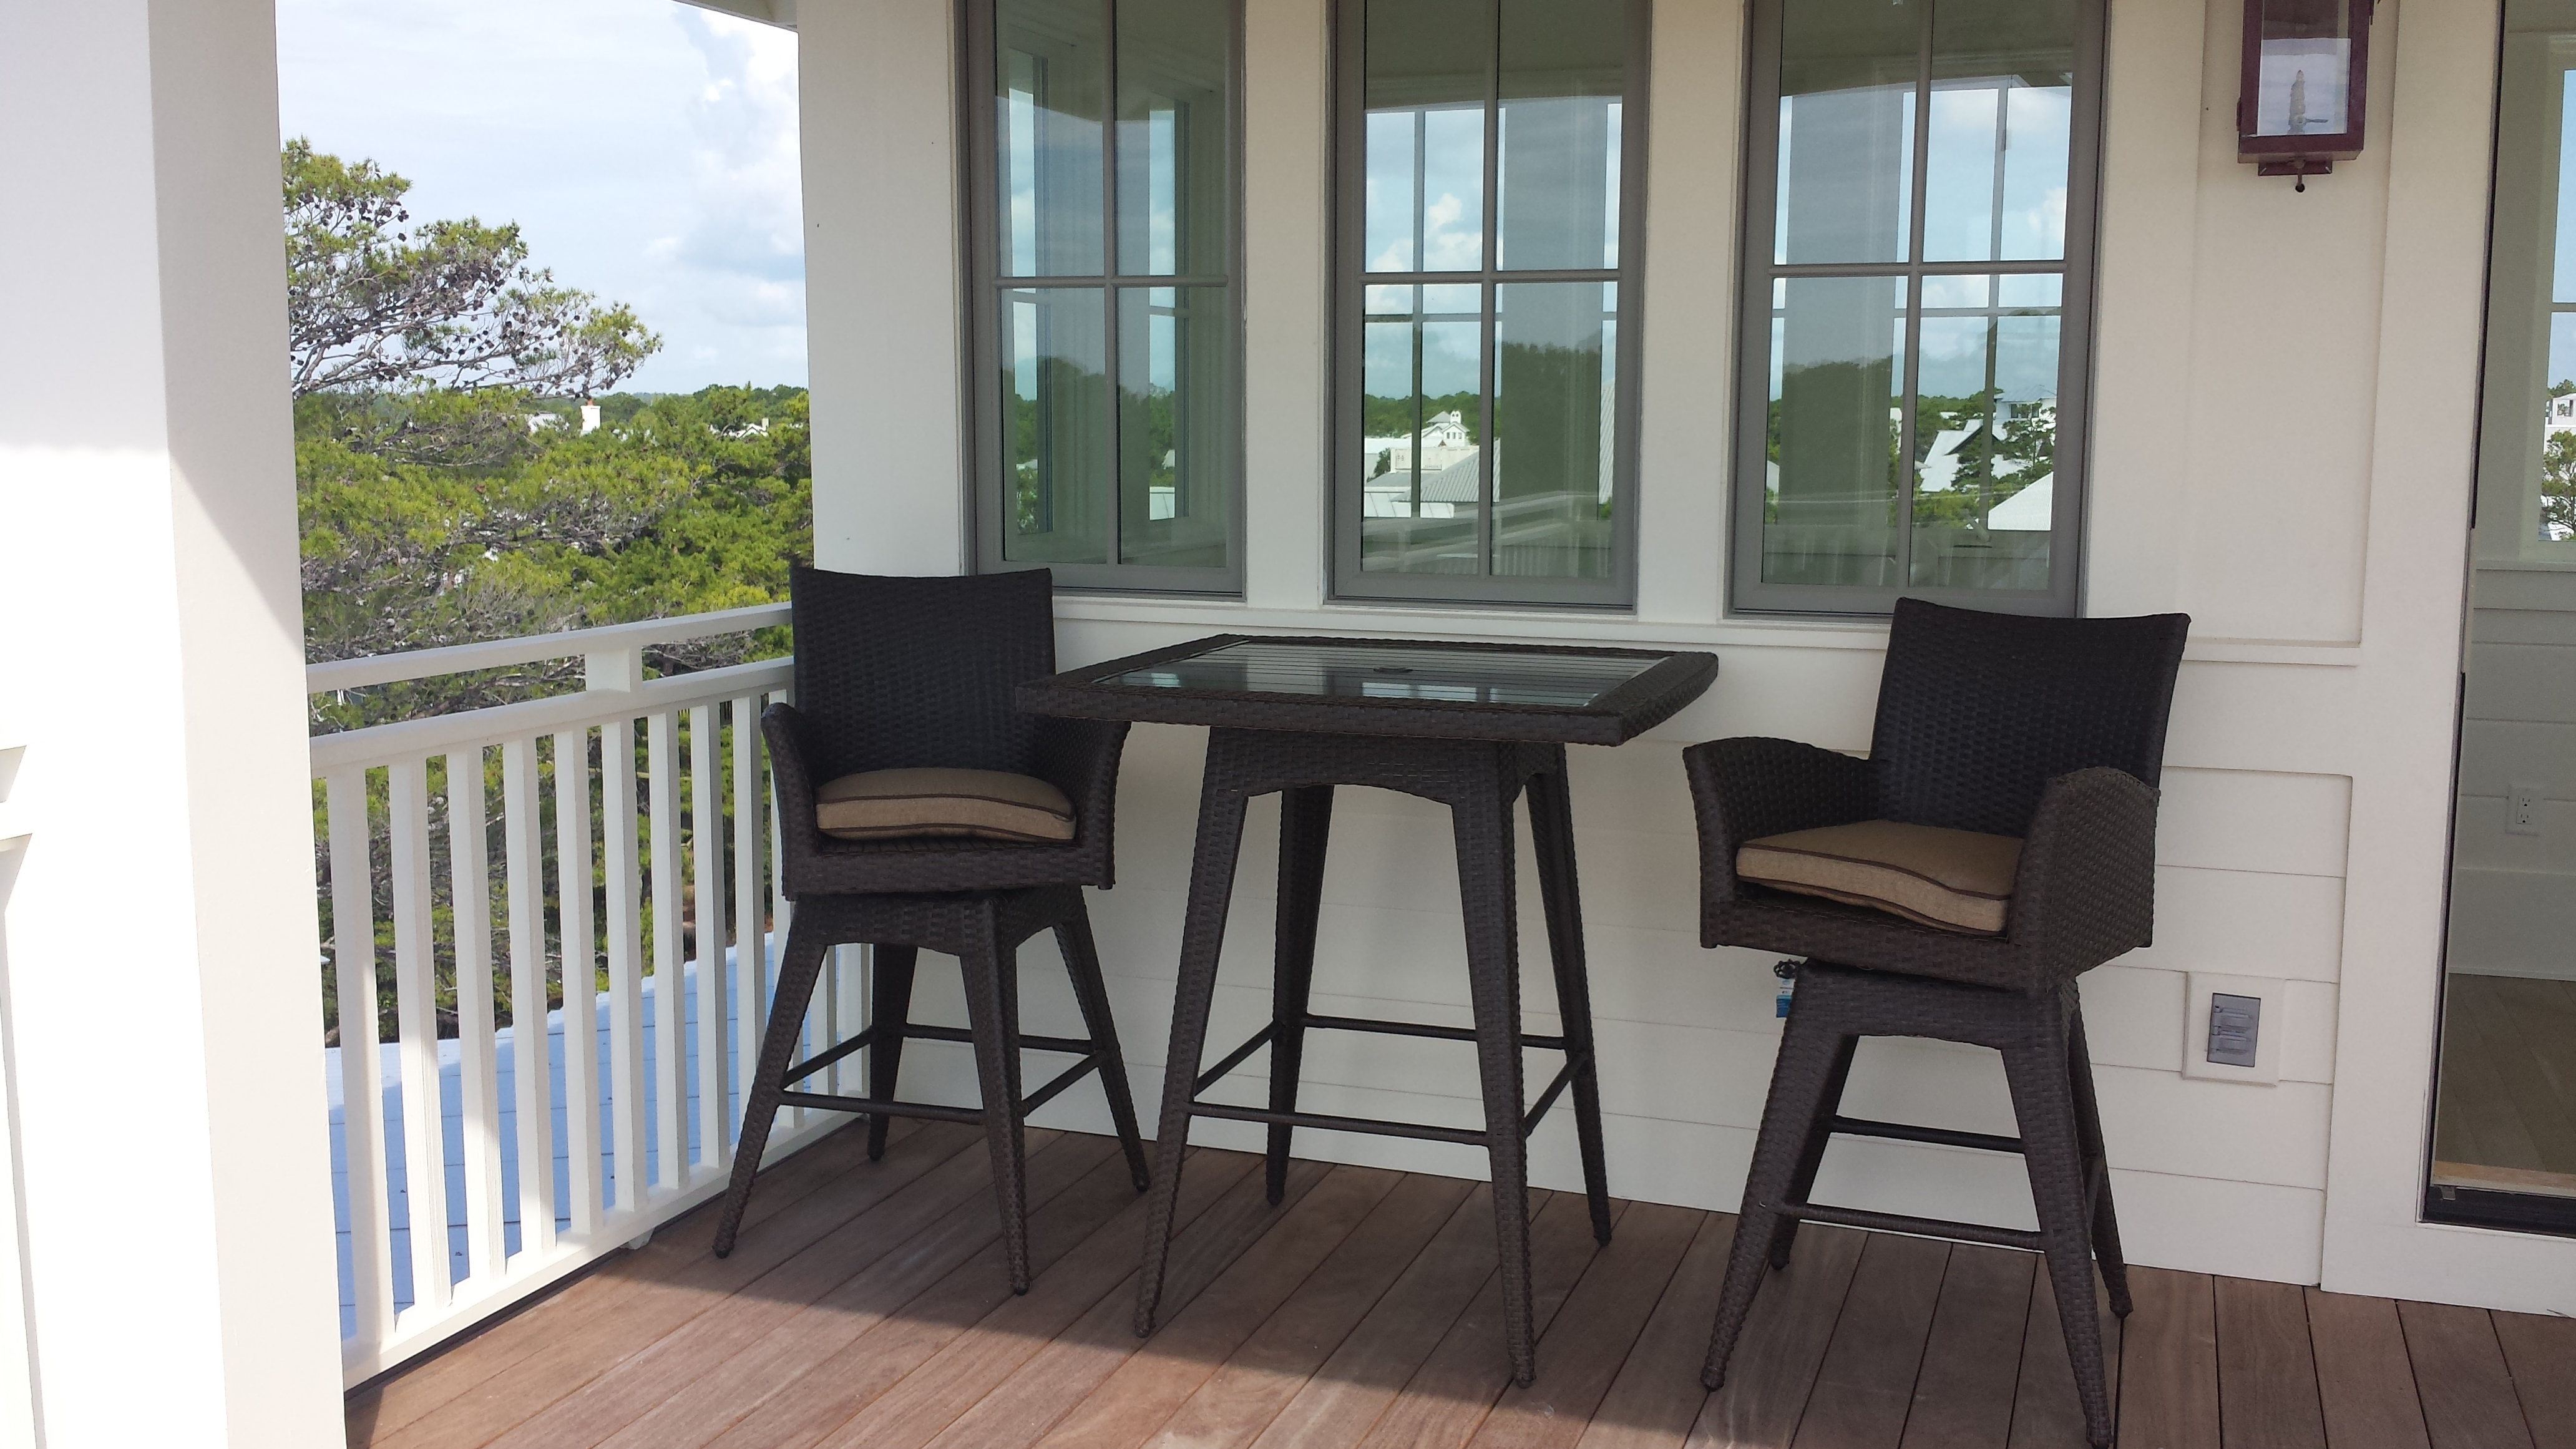 Roomy sun deck on 4th floor complete with bar table and two loungers